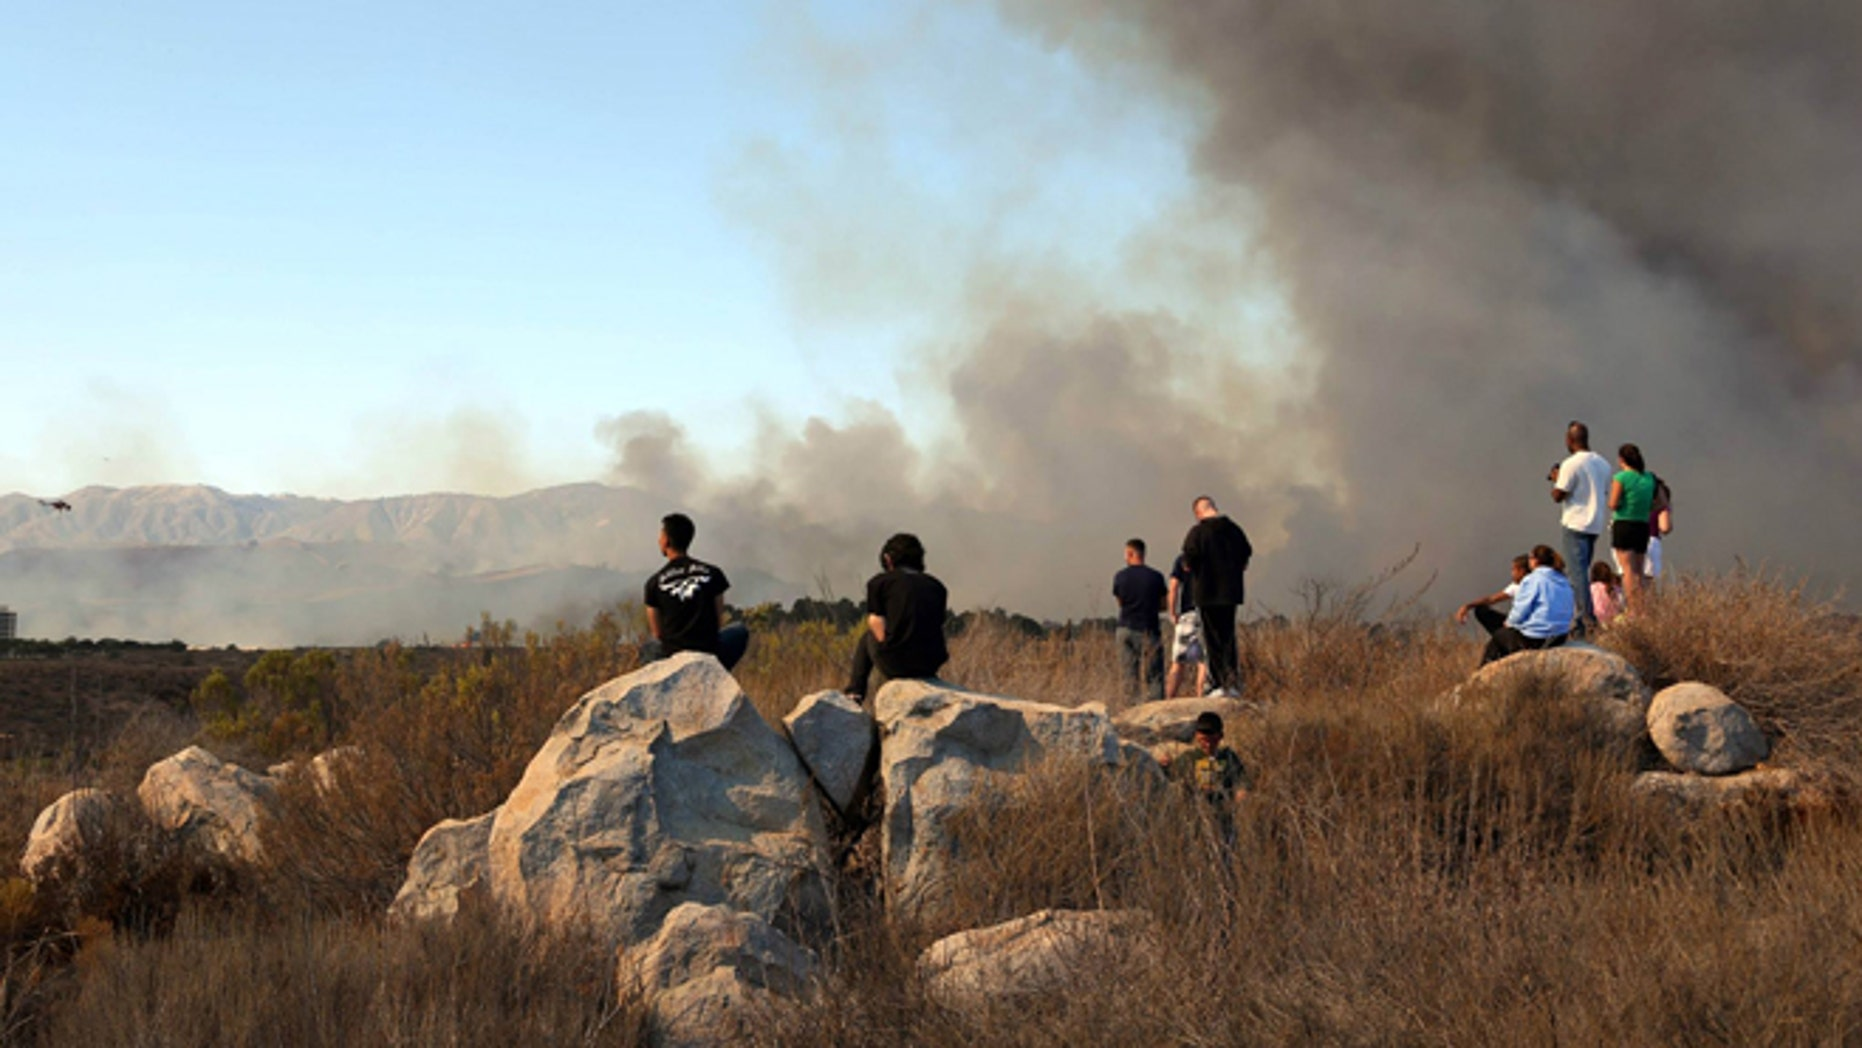 Oct. 5, 2013: This photo provided by the U.S. Marine Corps Base Camp Pendleton shows fire burning in the Lake O'Neill vicinity on Camp Pendleton, Calif. This brush fire at Camp Pendleton has burned more than 1,500 acres and forced evacuation of a military housing area and the base hospital. (AP/USMC, Cpl. Sarah Wolff Diaz)